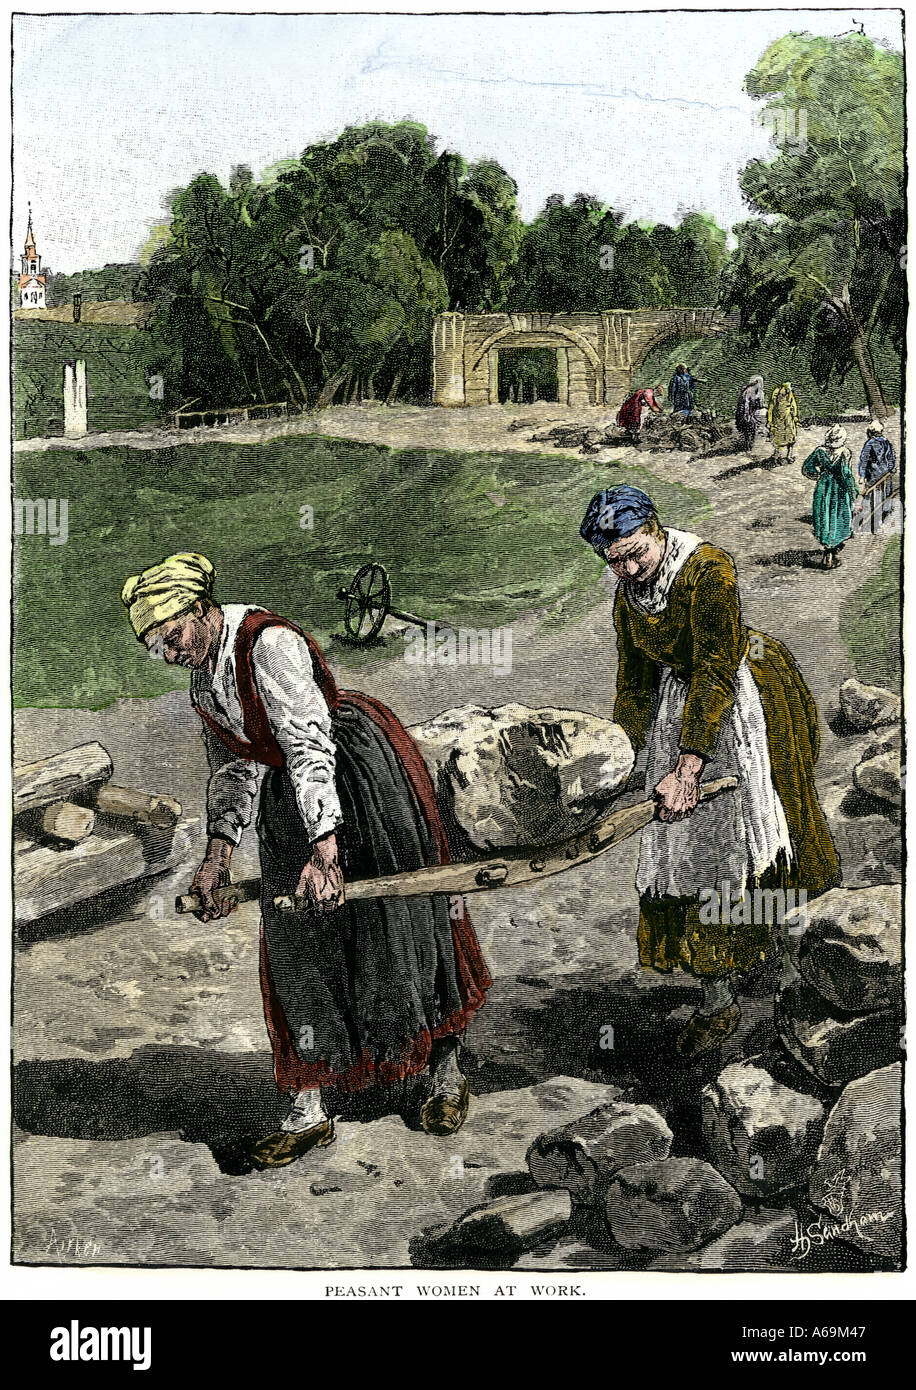 Russian peasant women at work carrying large stones on a litter 1800s. Hand-colored woodcut - Stock Image